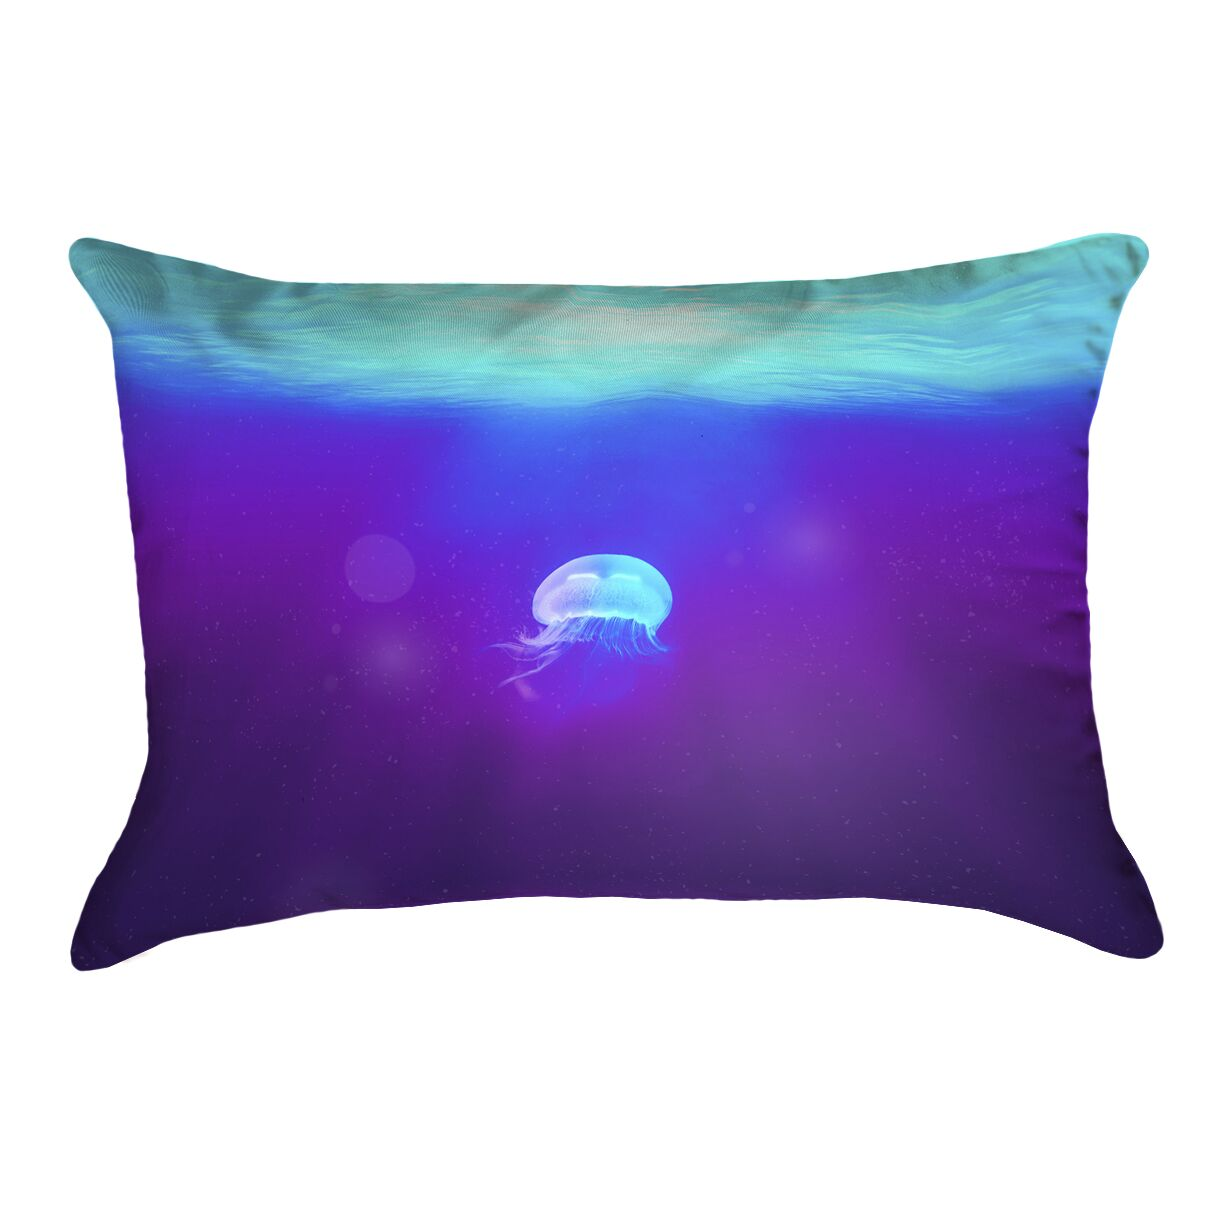 Jellyfish Double Sided Lumbar Pillow Type: Pillow Cover, Material: Polyster Twill